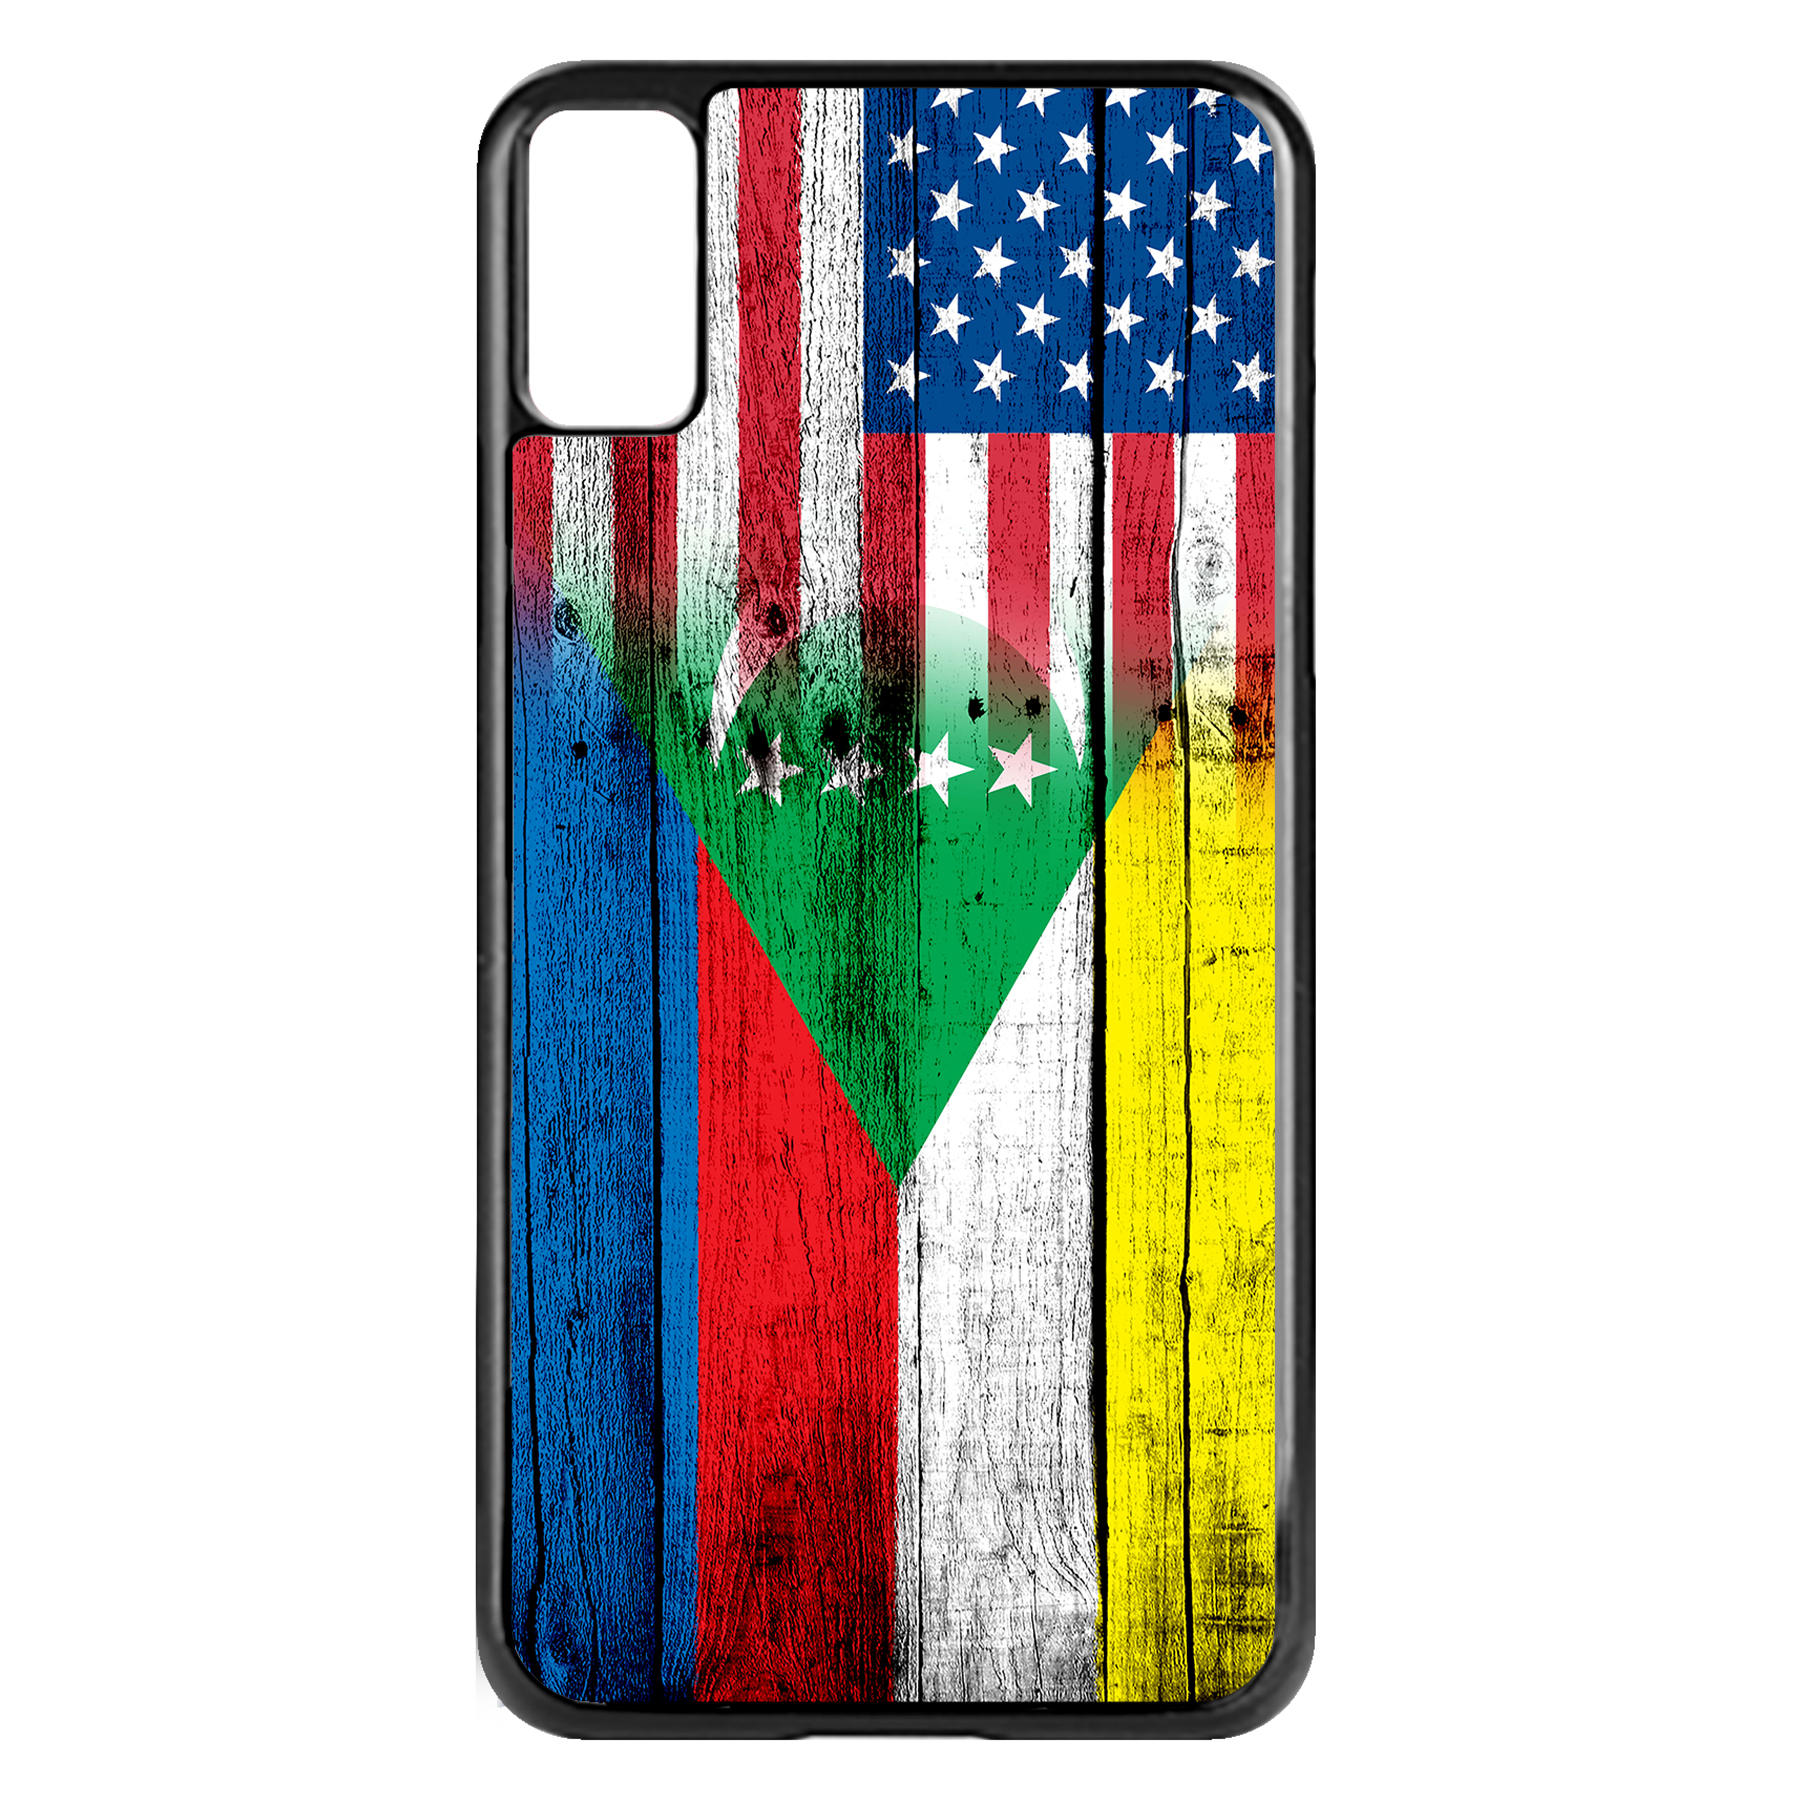 Apple-iPhone-Case-with-Flag-of-Comoros-Comorian-Many-Design-Options thumbnail 17